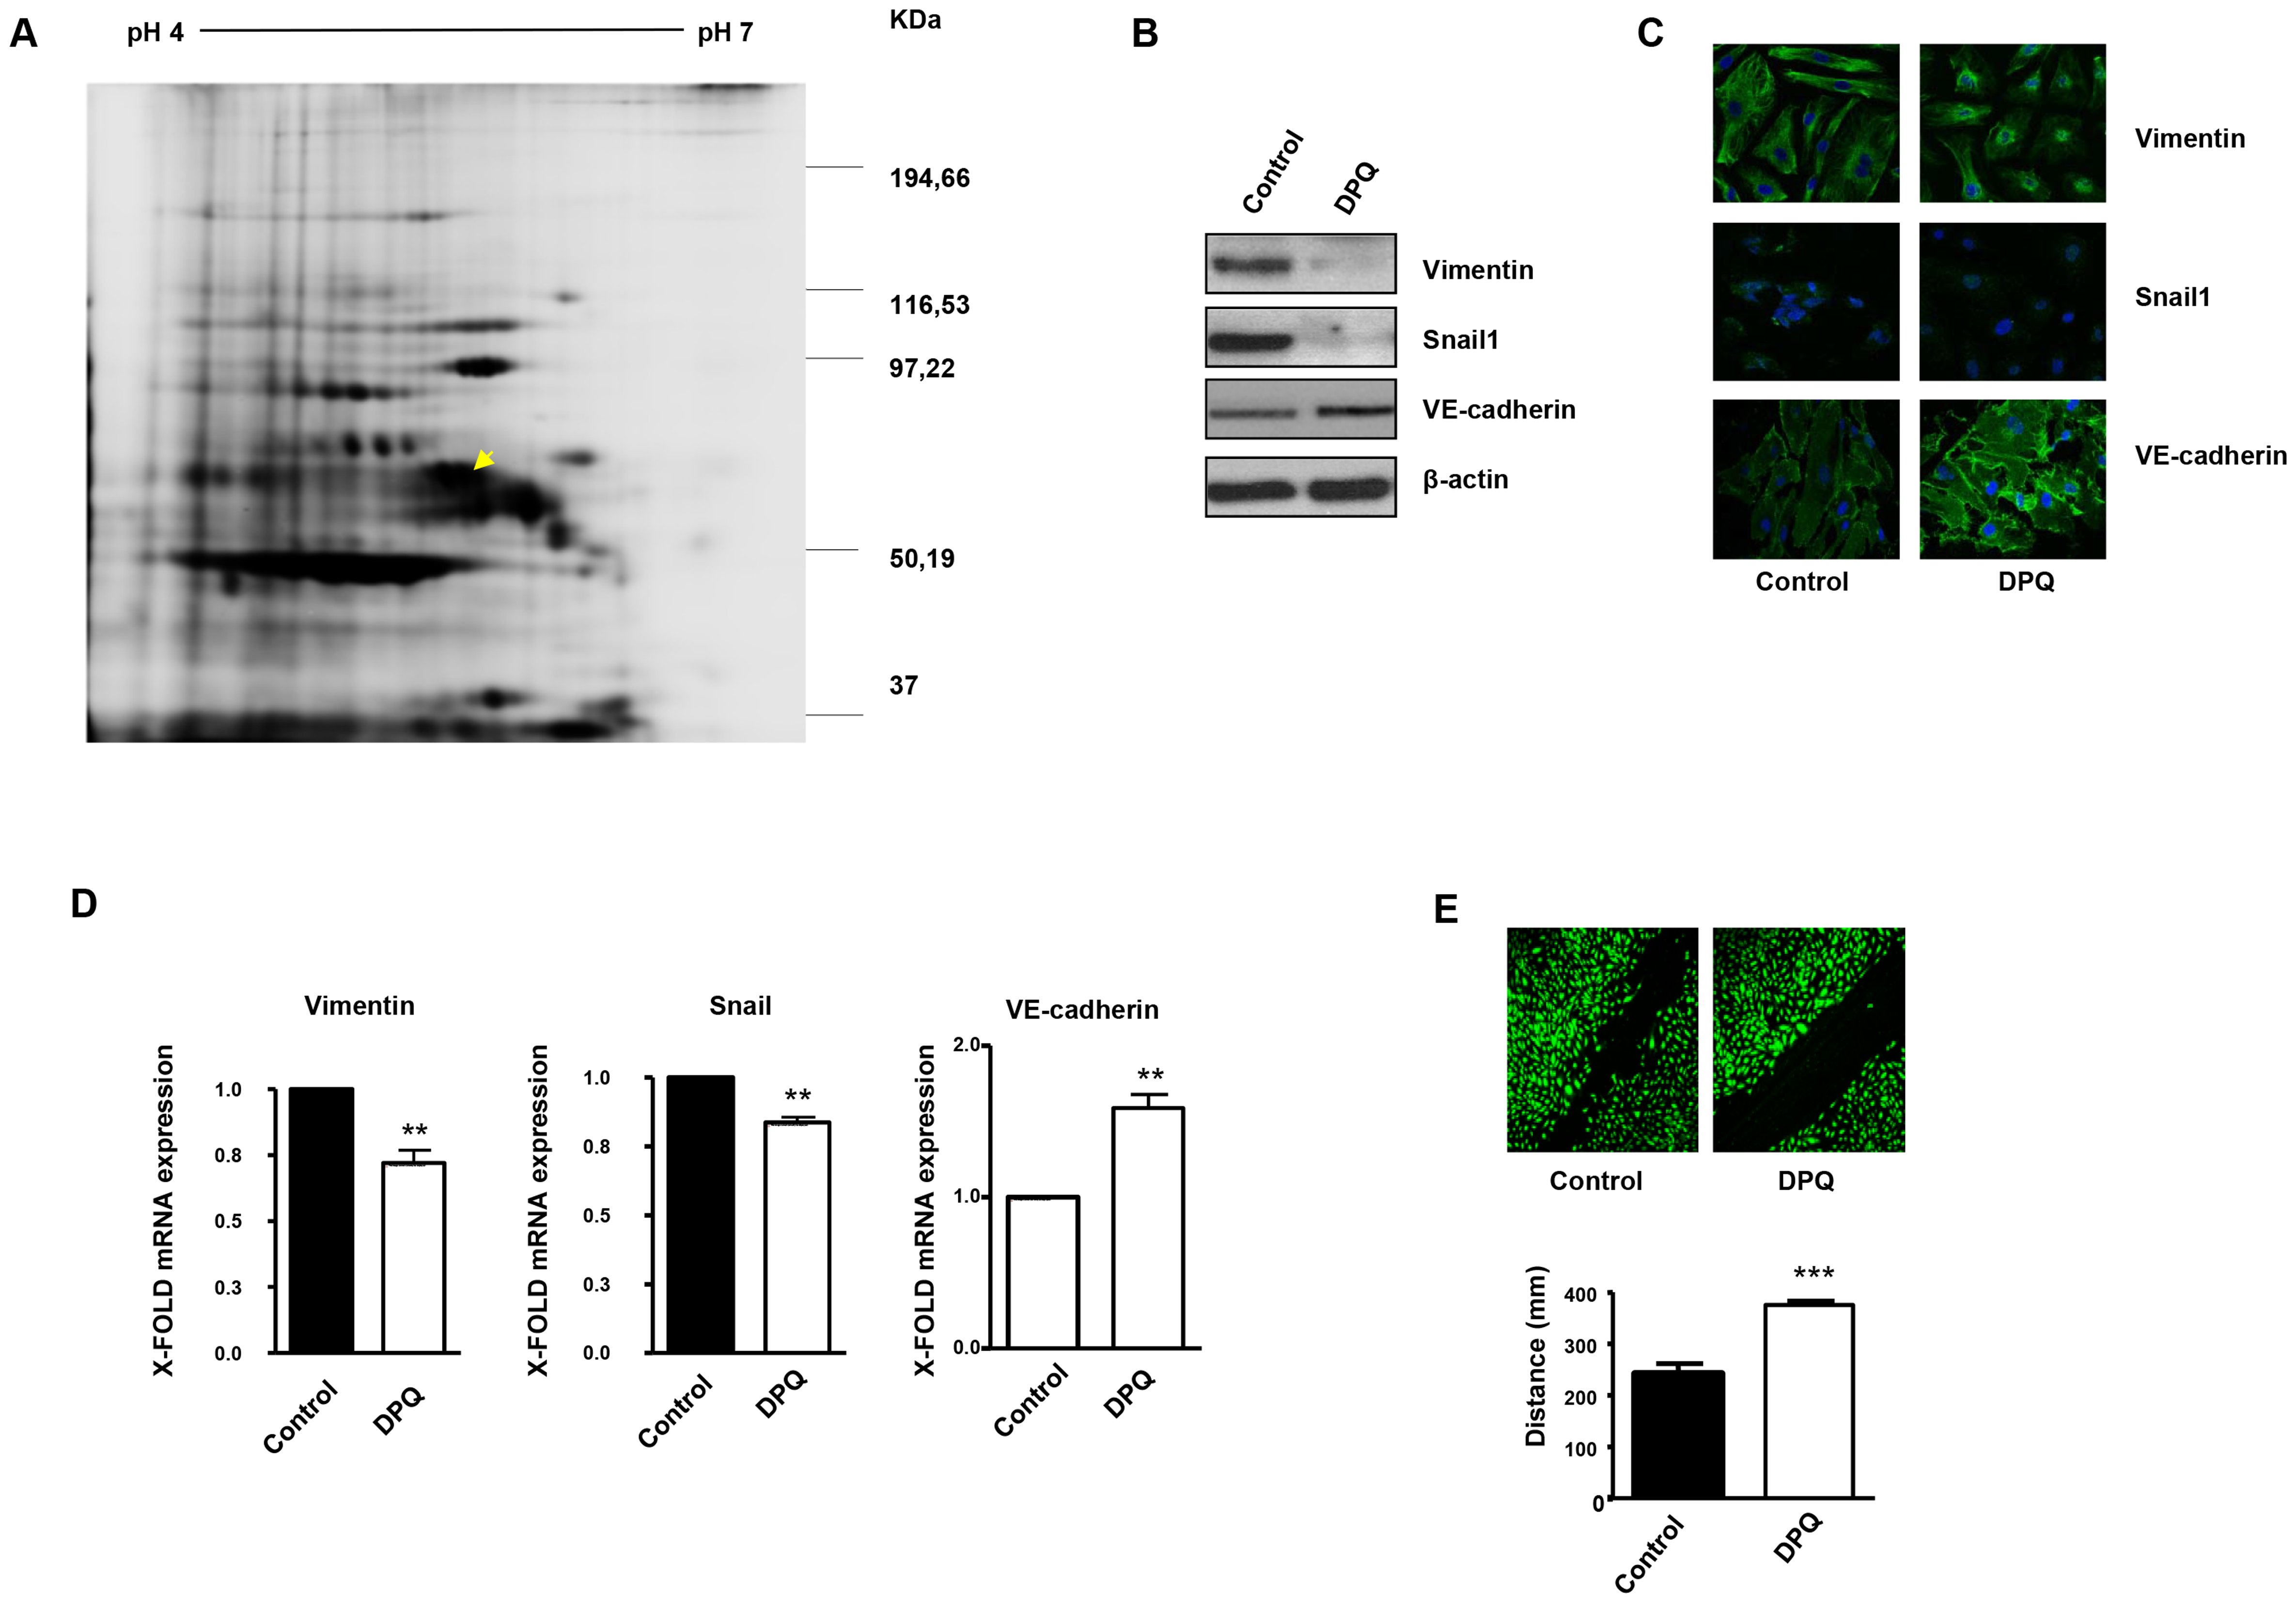 PARP inhibition down-regulates vimentin expression and inhibits endothelial-to-mesenchymal transition in HUVECs.